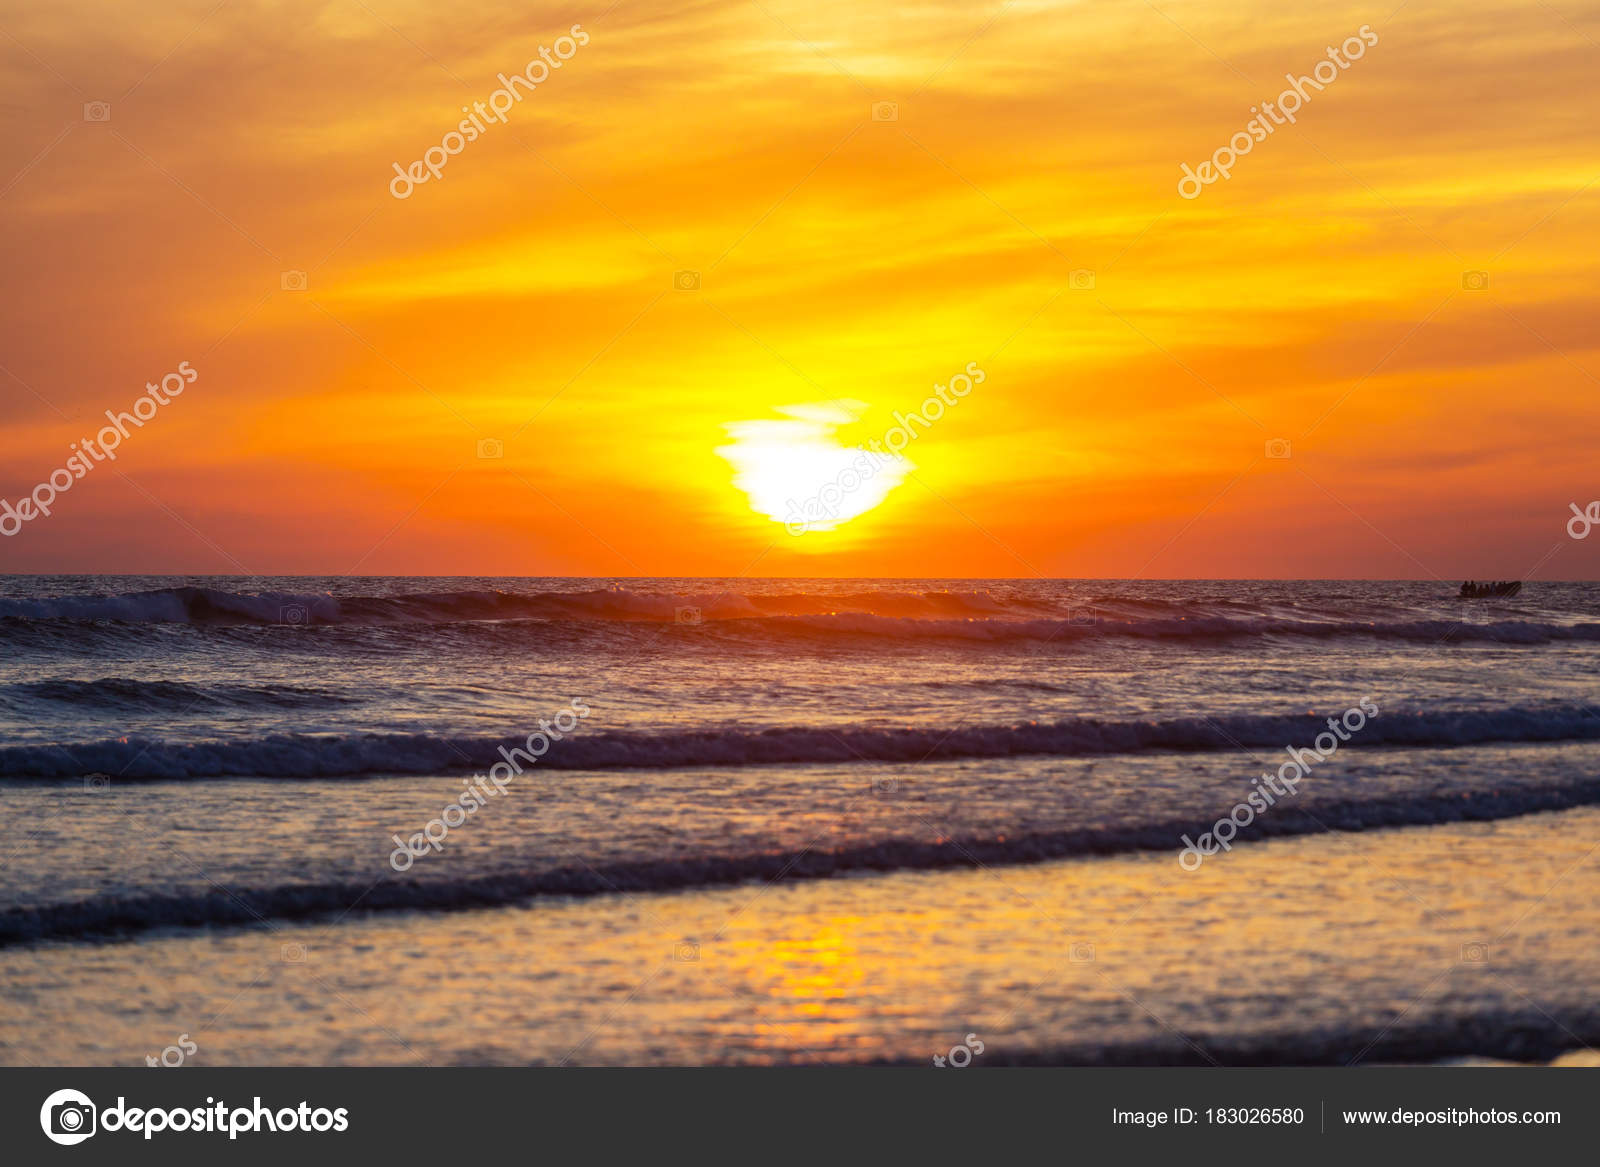 scenic colorful sunset sea coast good wallpaper background image